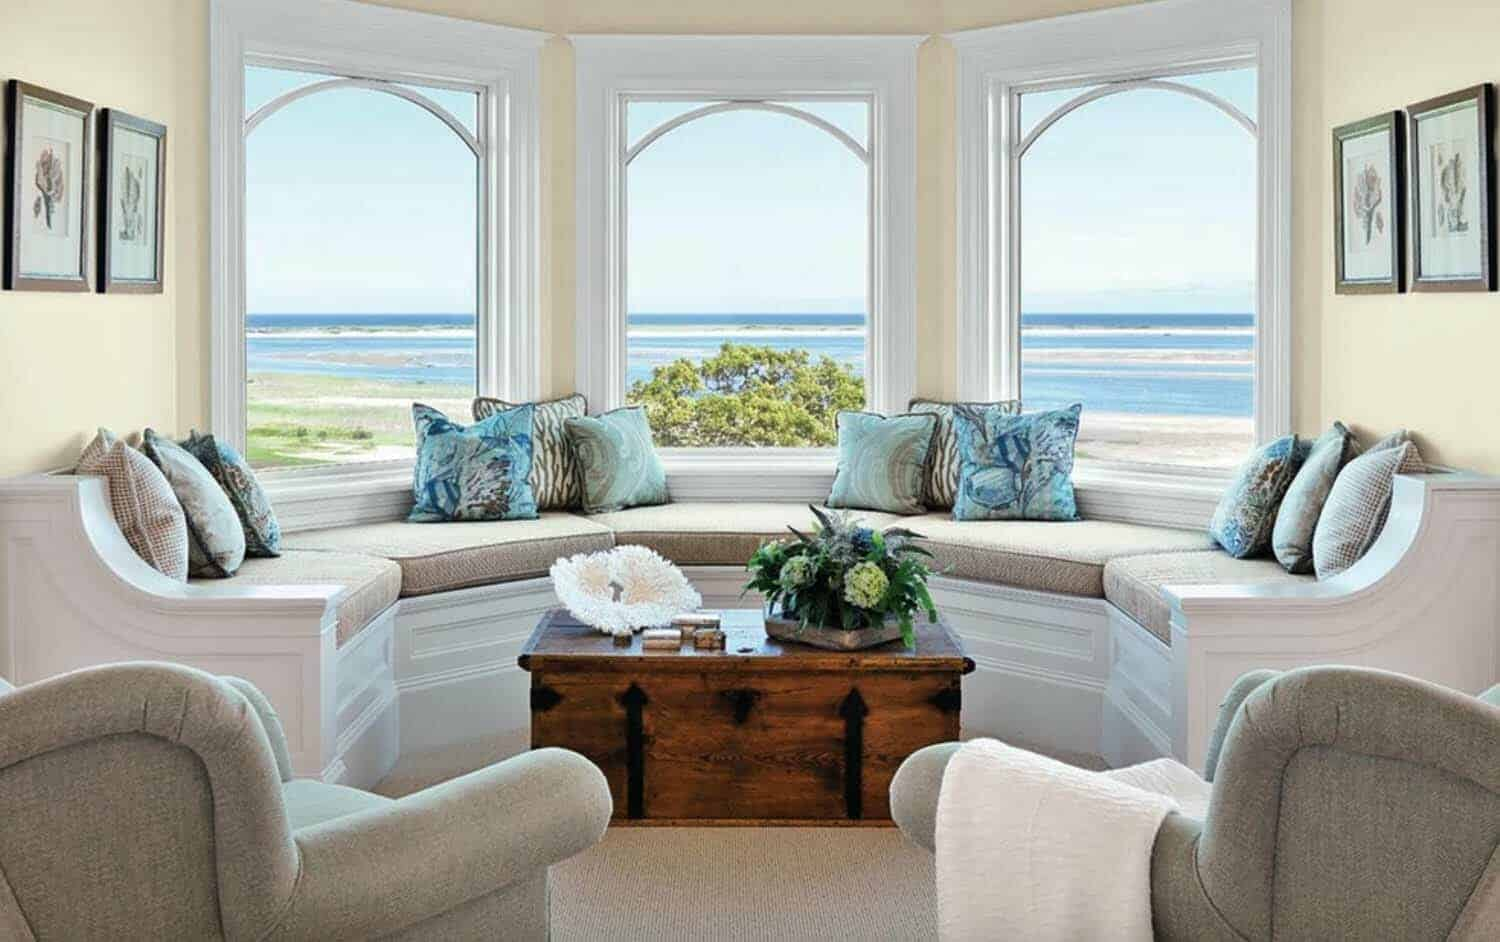 Excellent 33 Amazing Built In Window Seats Capturing Mesmerizing Ocean Unemploymentrelief Wooden Chair Designs For Living Room Unemploymentrelieforg